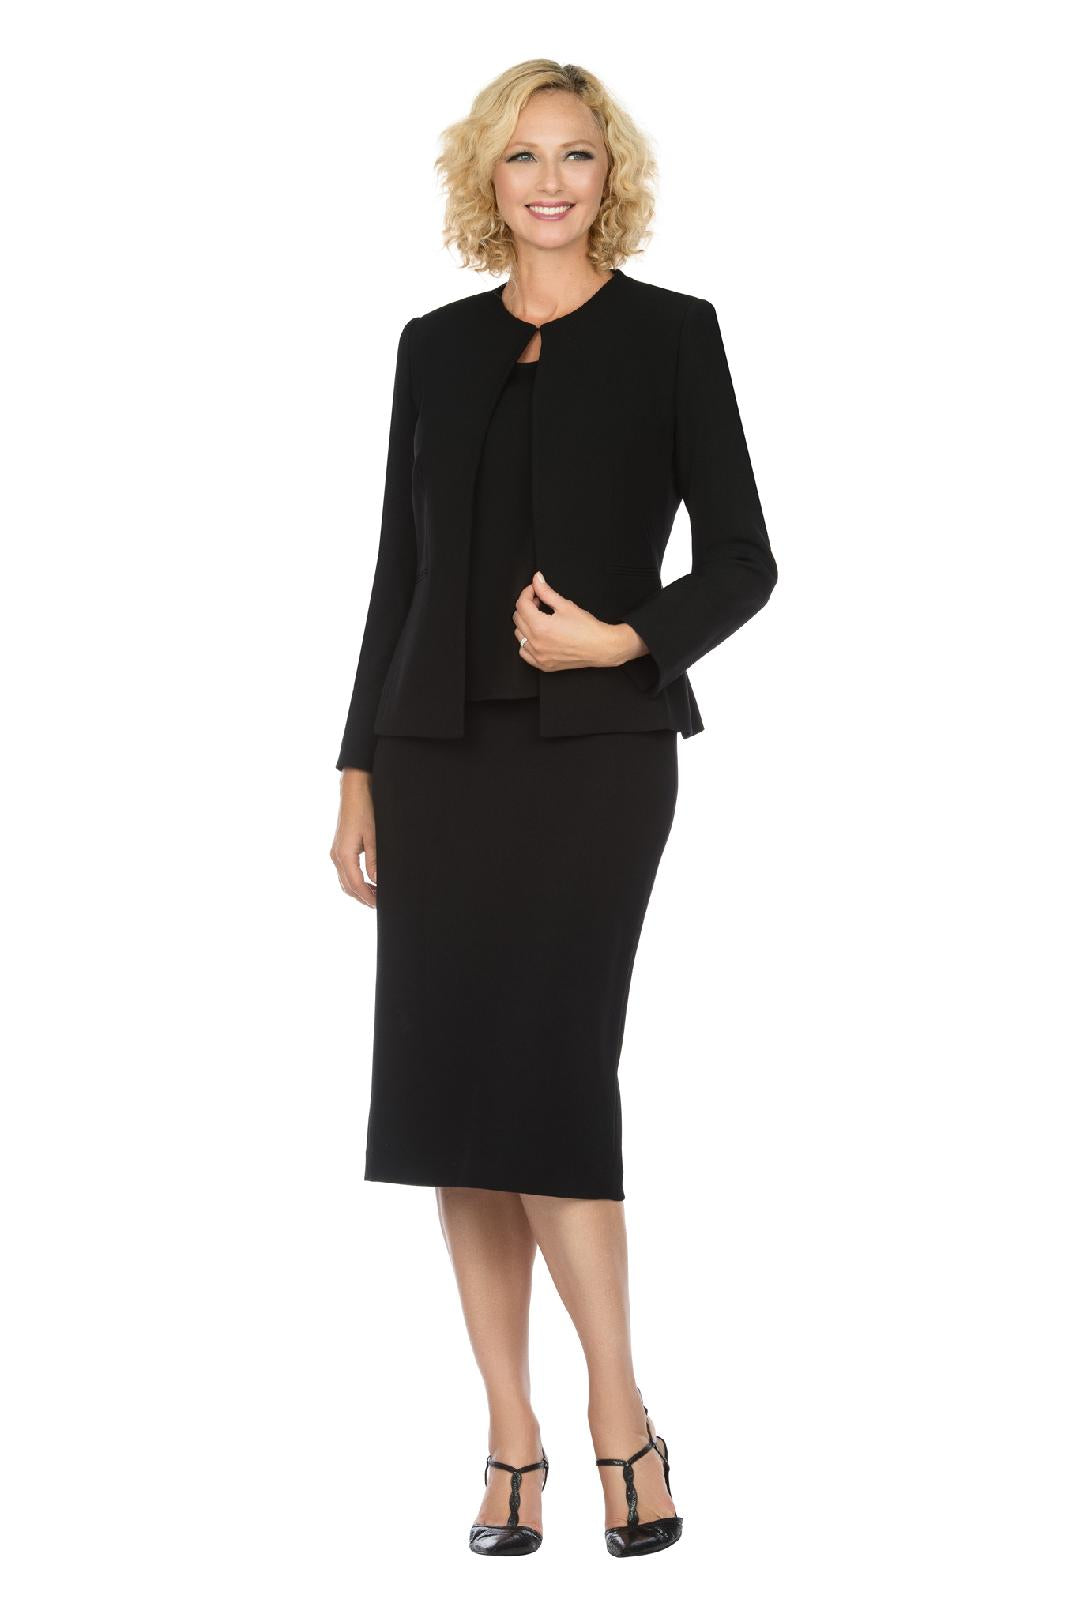 Giovanna Usher Suit S0721-Black - Church Suits For Less